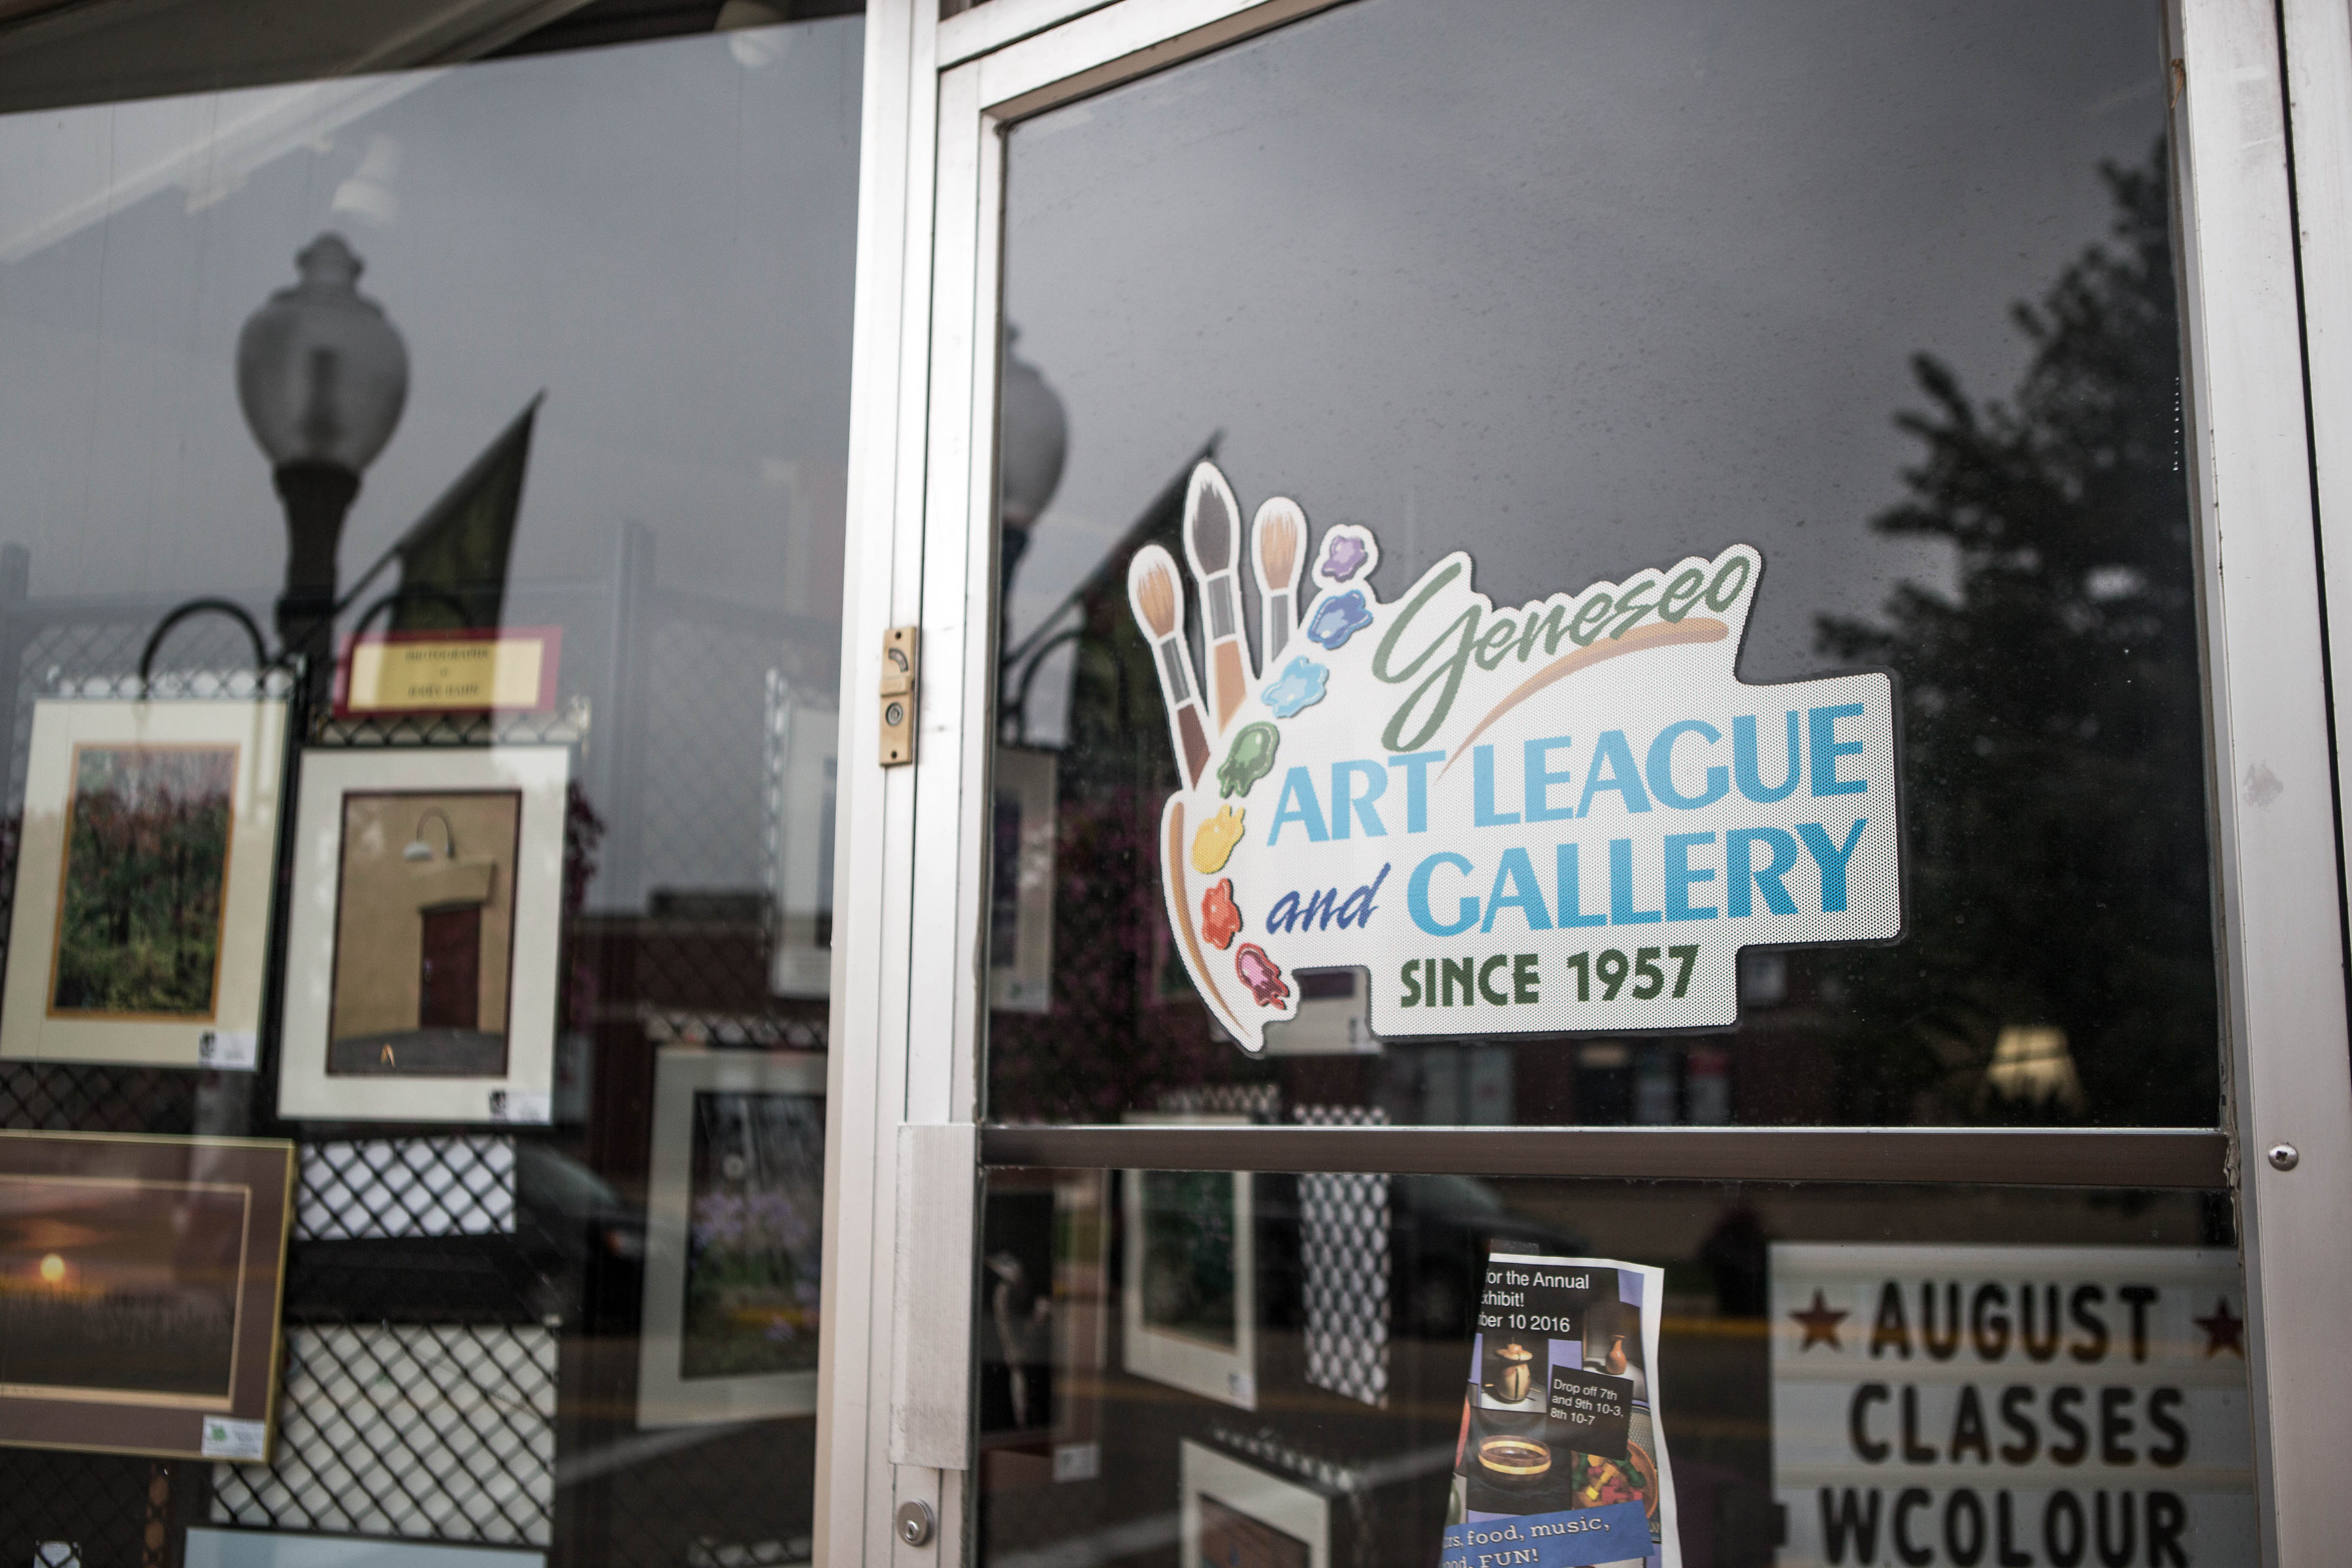 Established in 1957, the Geneseo Art League strives to keep art alive in its small town.<br> They also sponsor the yearly events such as the Maple City Fine Arts Show.